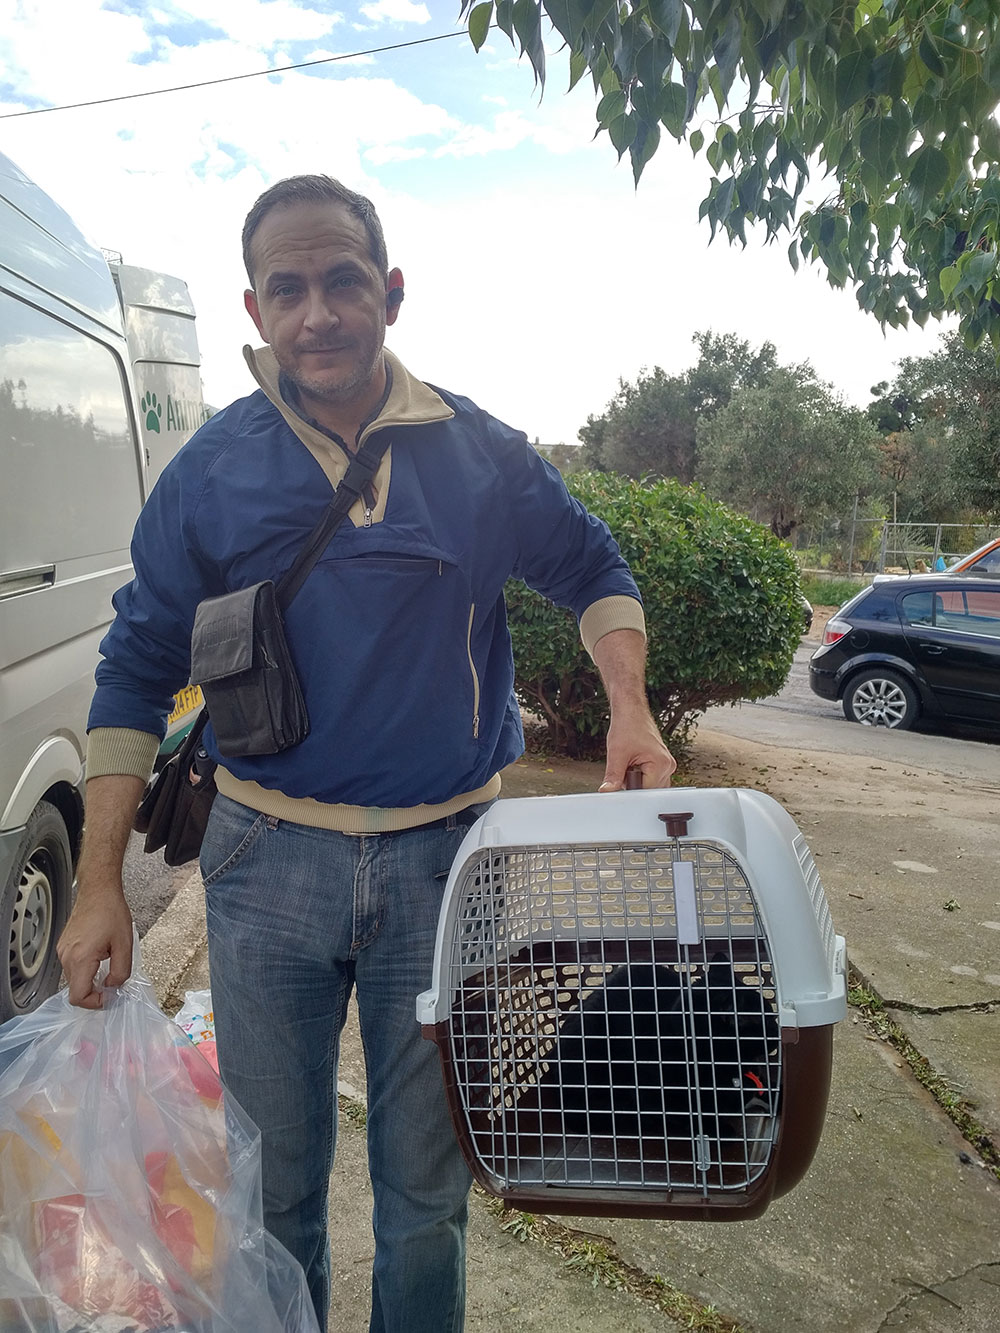 Dimitry arrives with his splendid cat Nera…